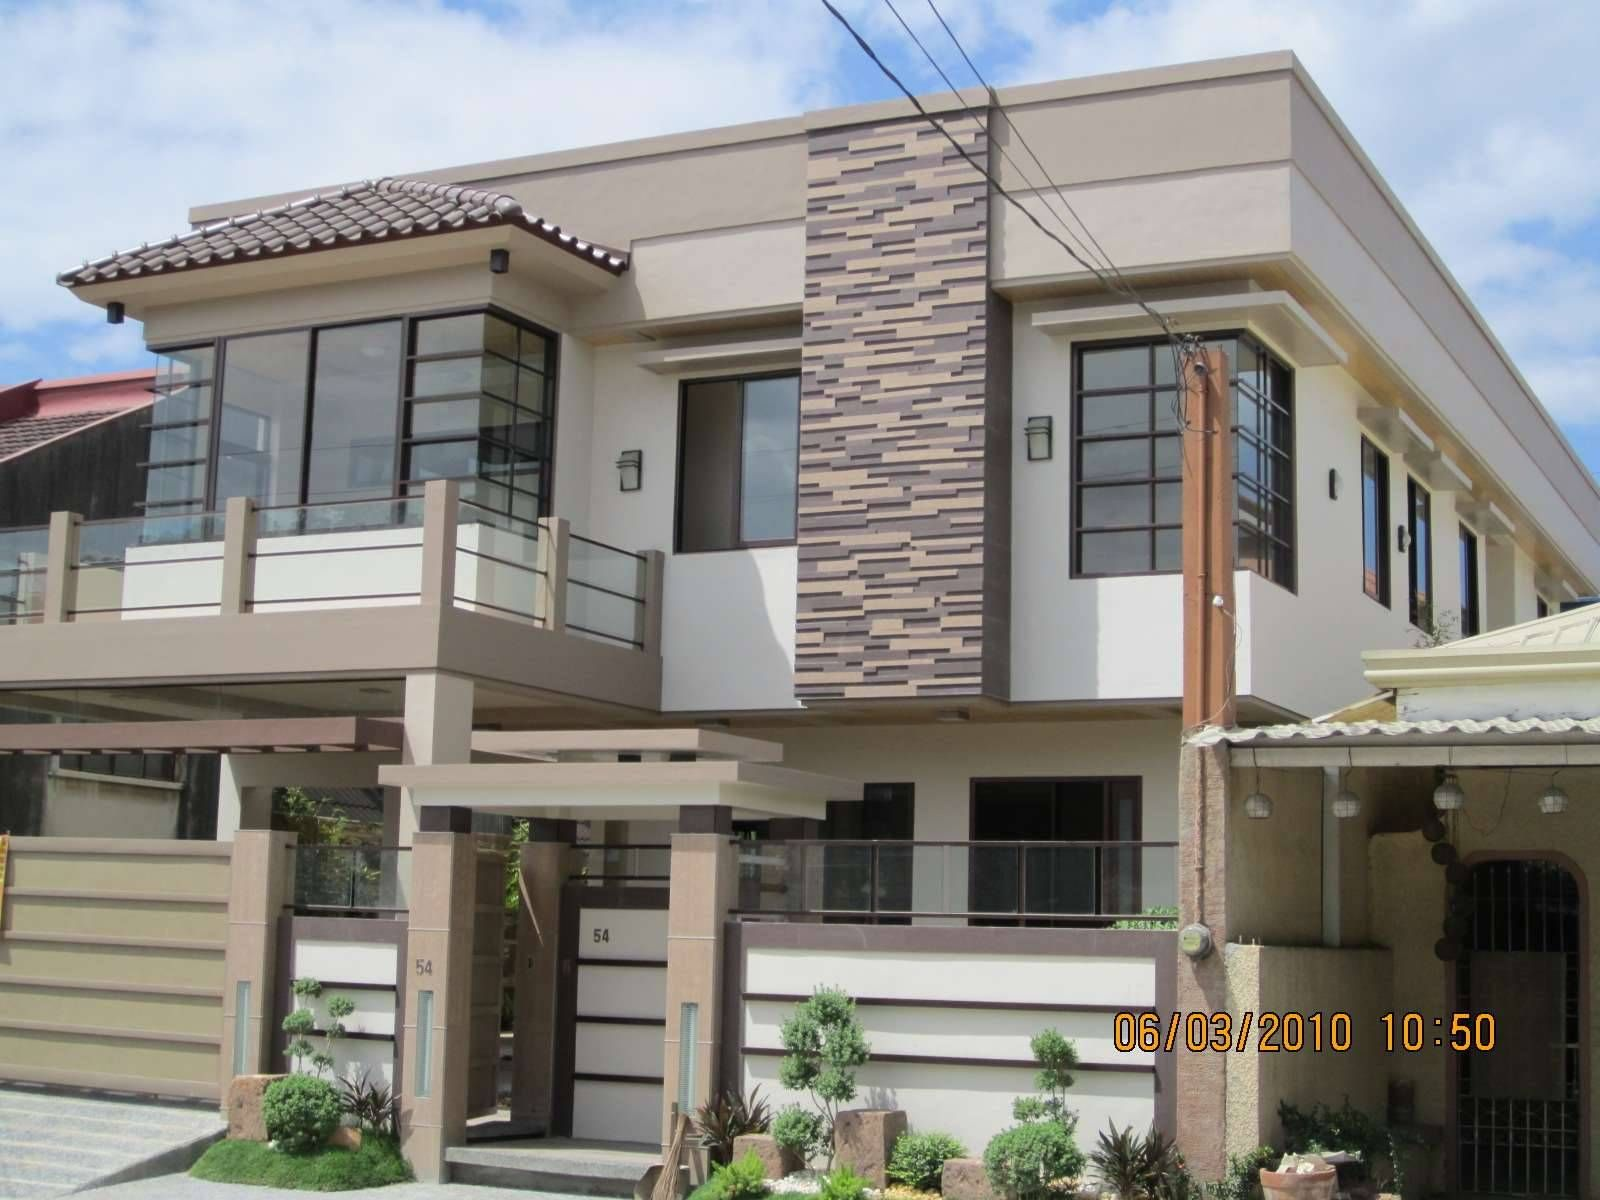 Philippines modern house exterior design dream house for Small house exterior design philippines